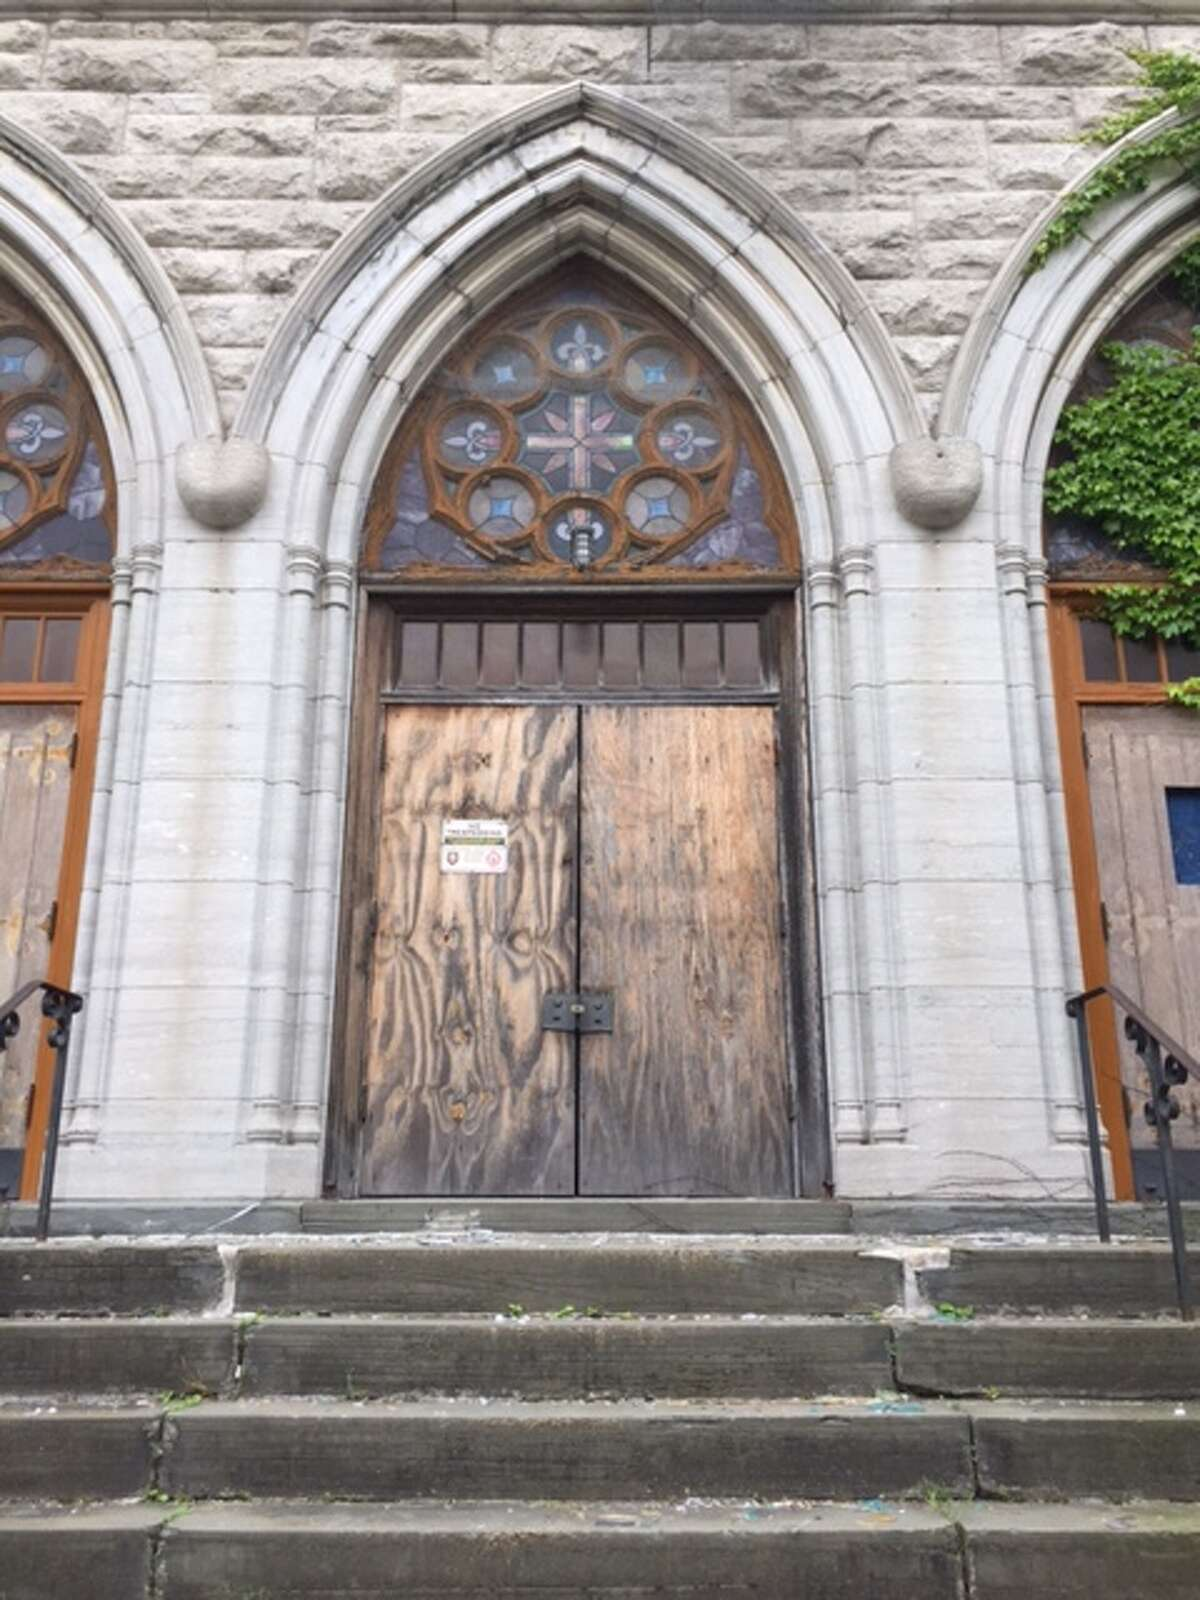 The former St. John's Catholic Church on Green Street in Albany remains vacant and decaying on Sunday, June 4, 2017. Its owner, World Unity Corp., previously had plans to rehabilitate the building into its headquarters, but the project never got off the ground. (Amanda Fries / Times Union)